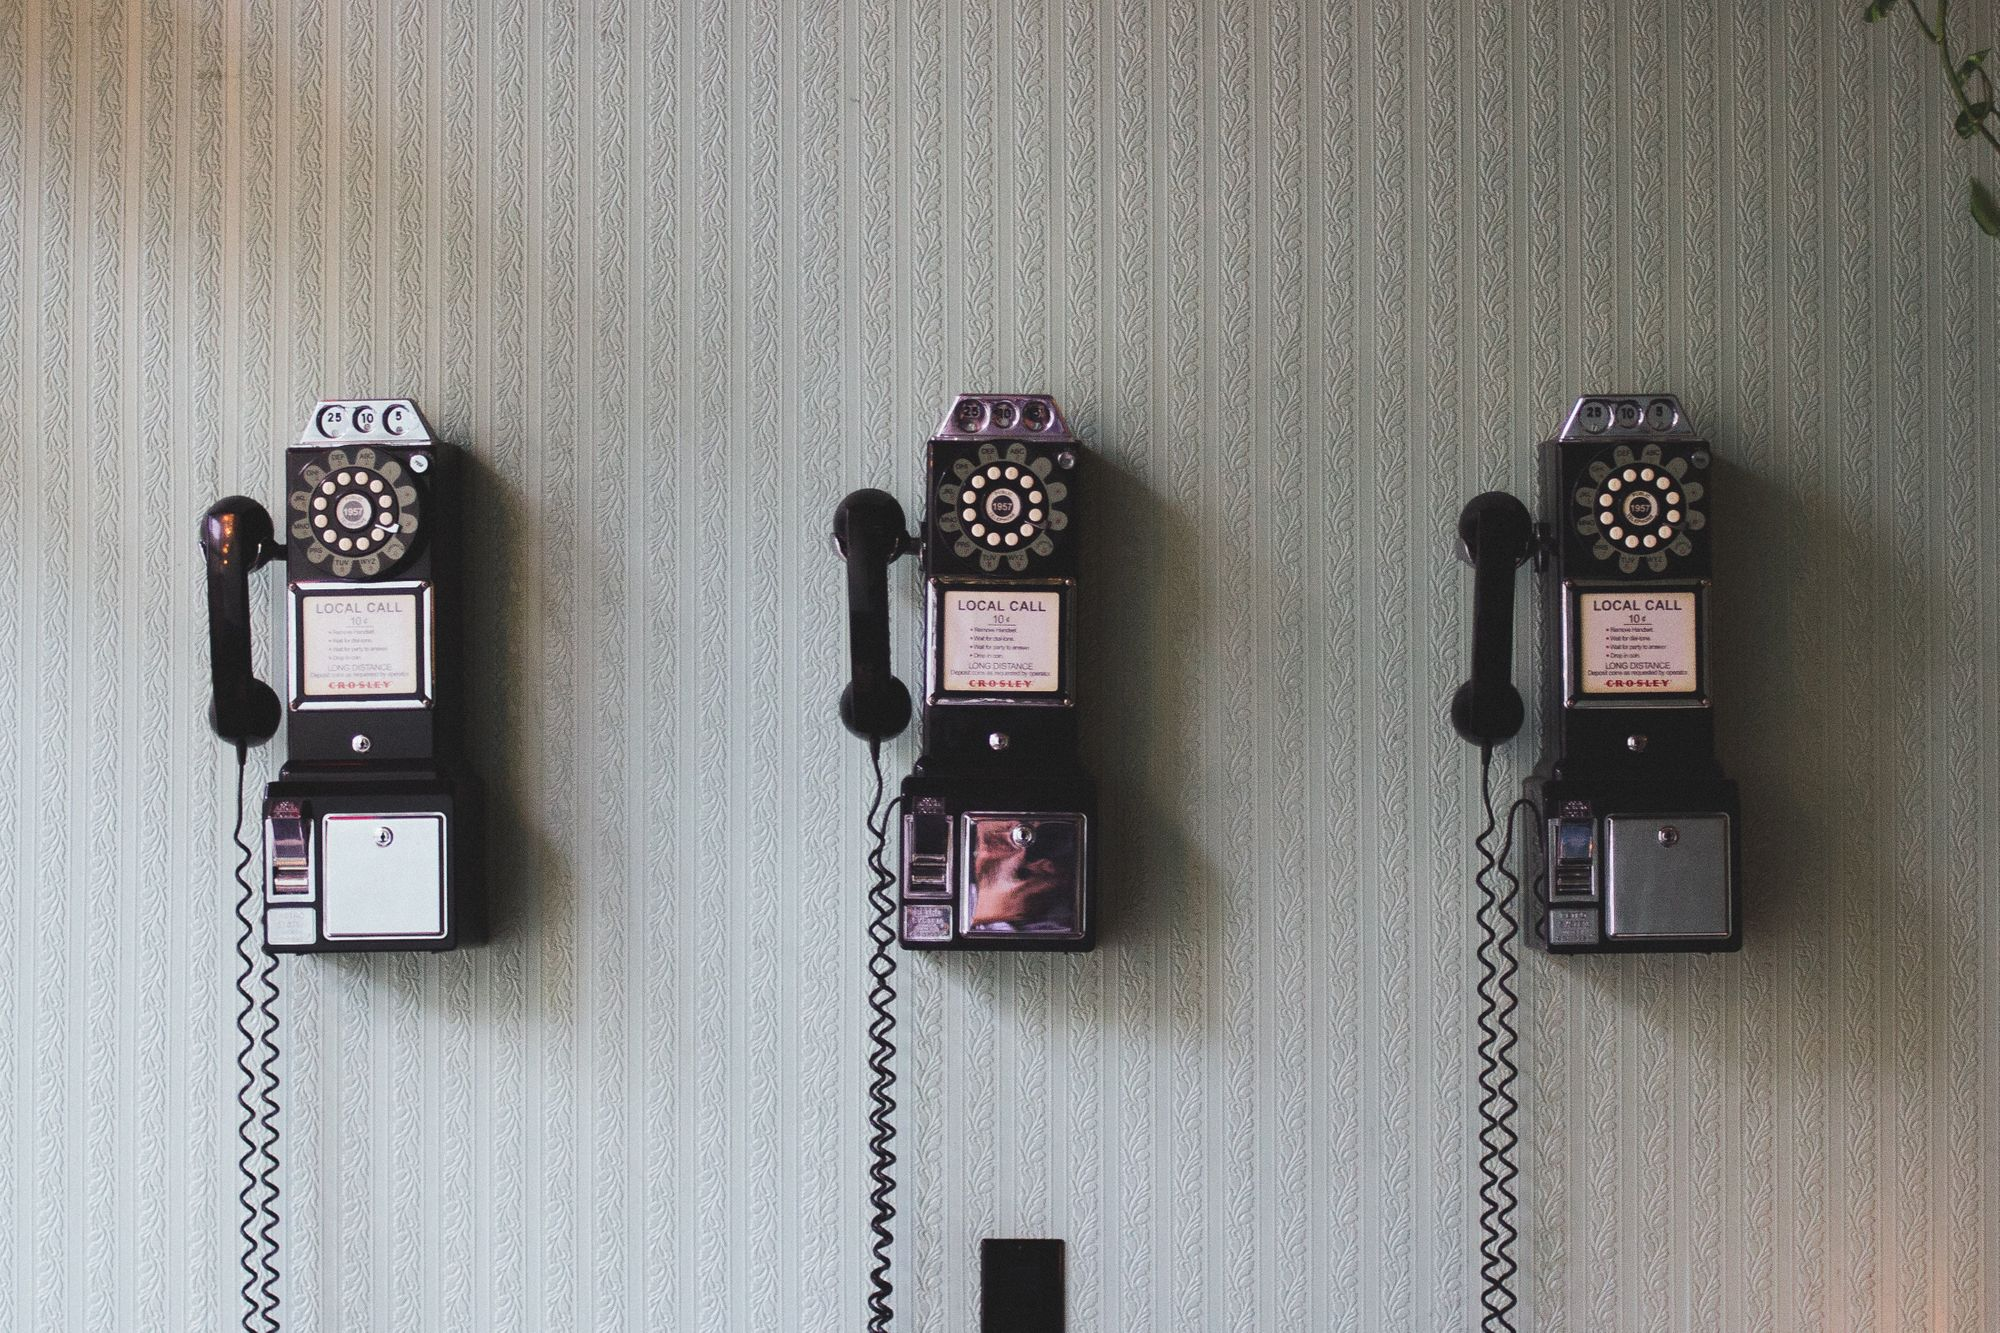 Three old-fashioned phones